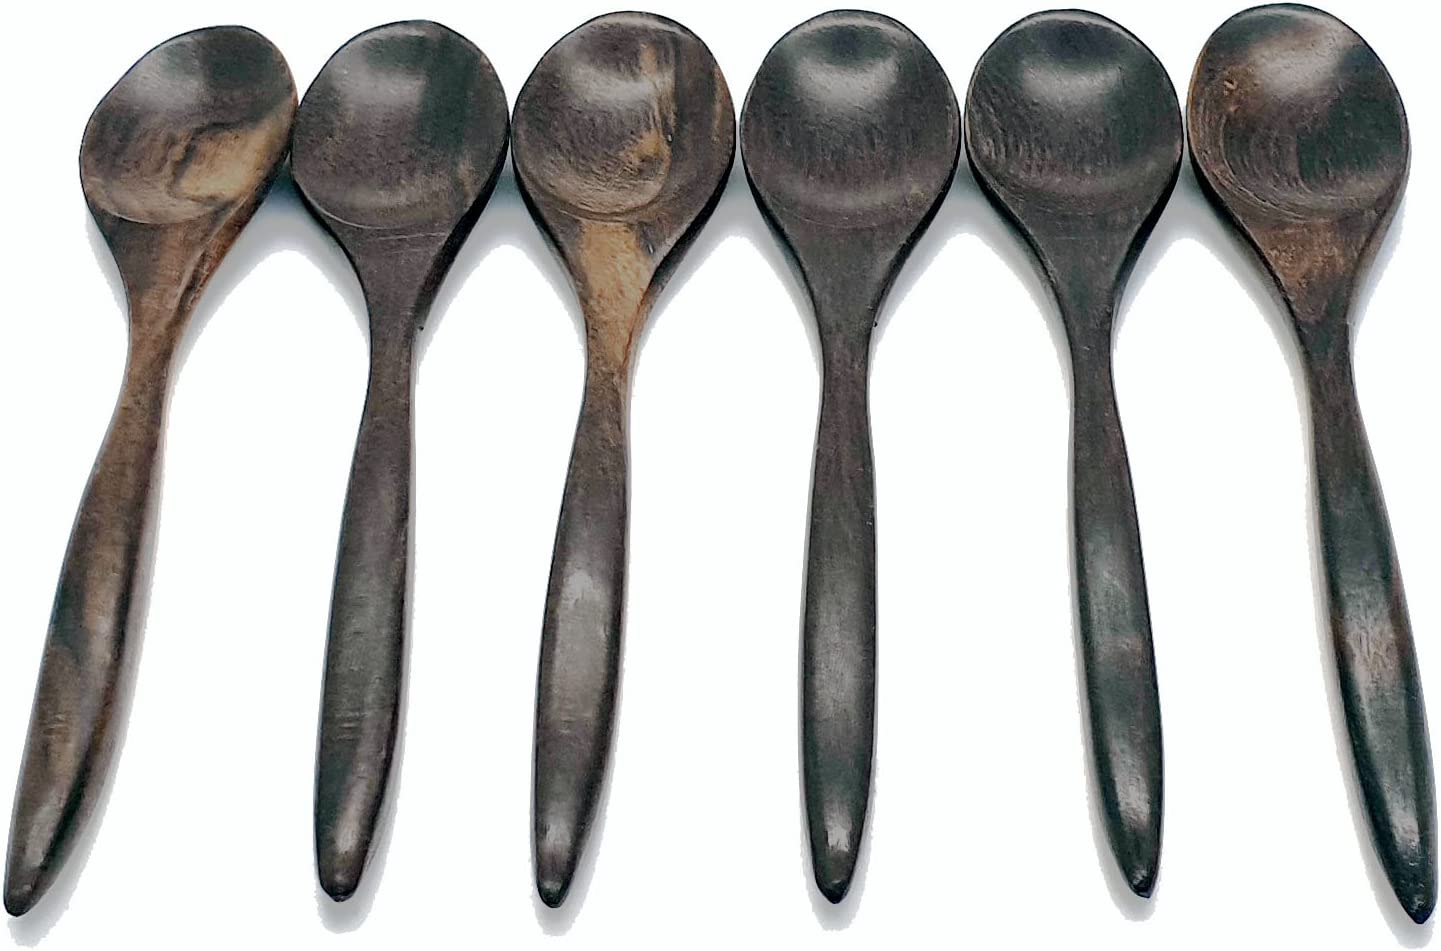 Set of 6 Hand Made Vegan 100/% Natural Size:4inch Vie Gourmet Coconut Spoons Beautifully Handcrafted from Reclaimed Coconut Shells Lightweight /& Durable for Serving Eco Friendly Decoration